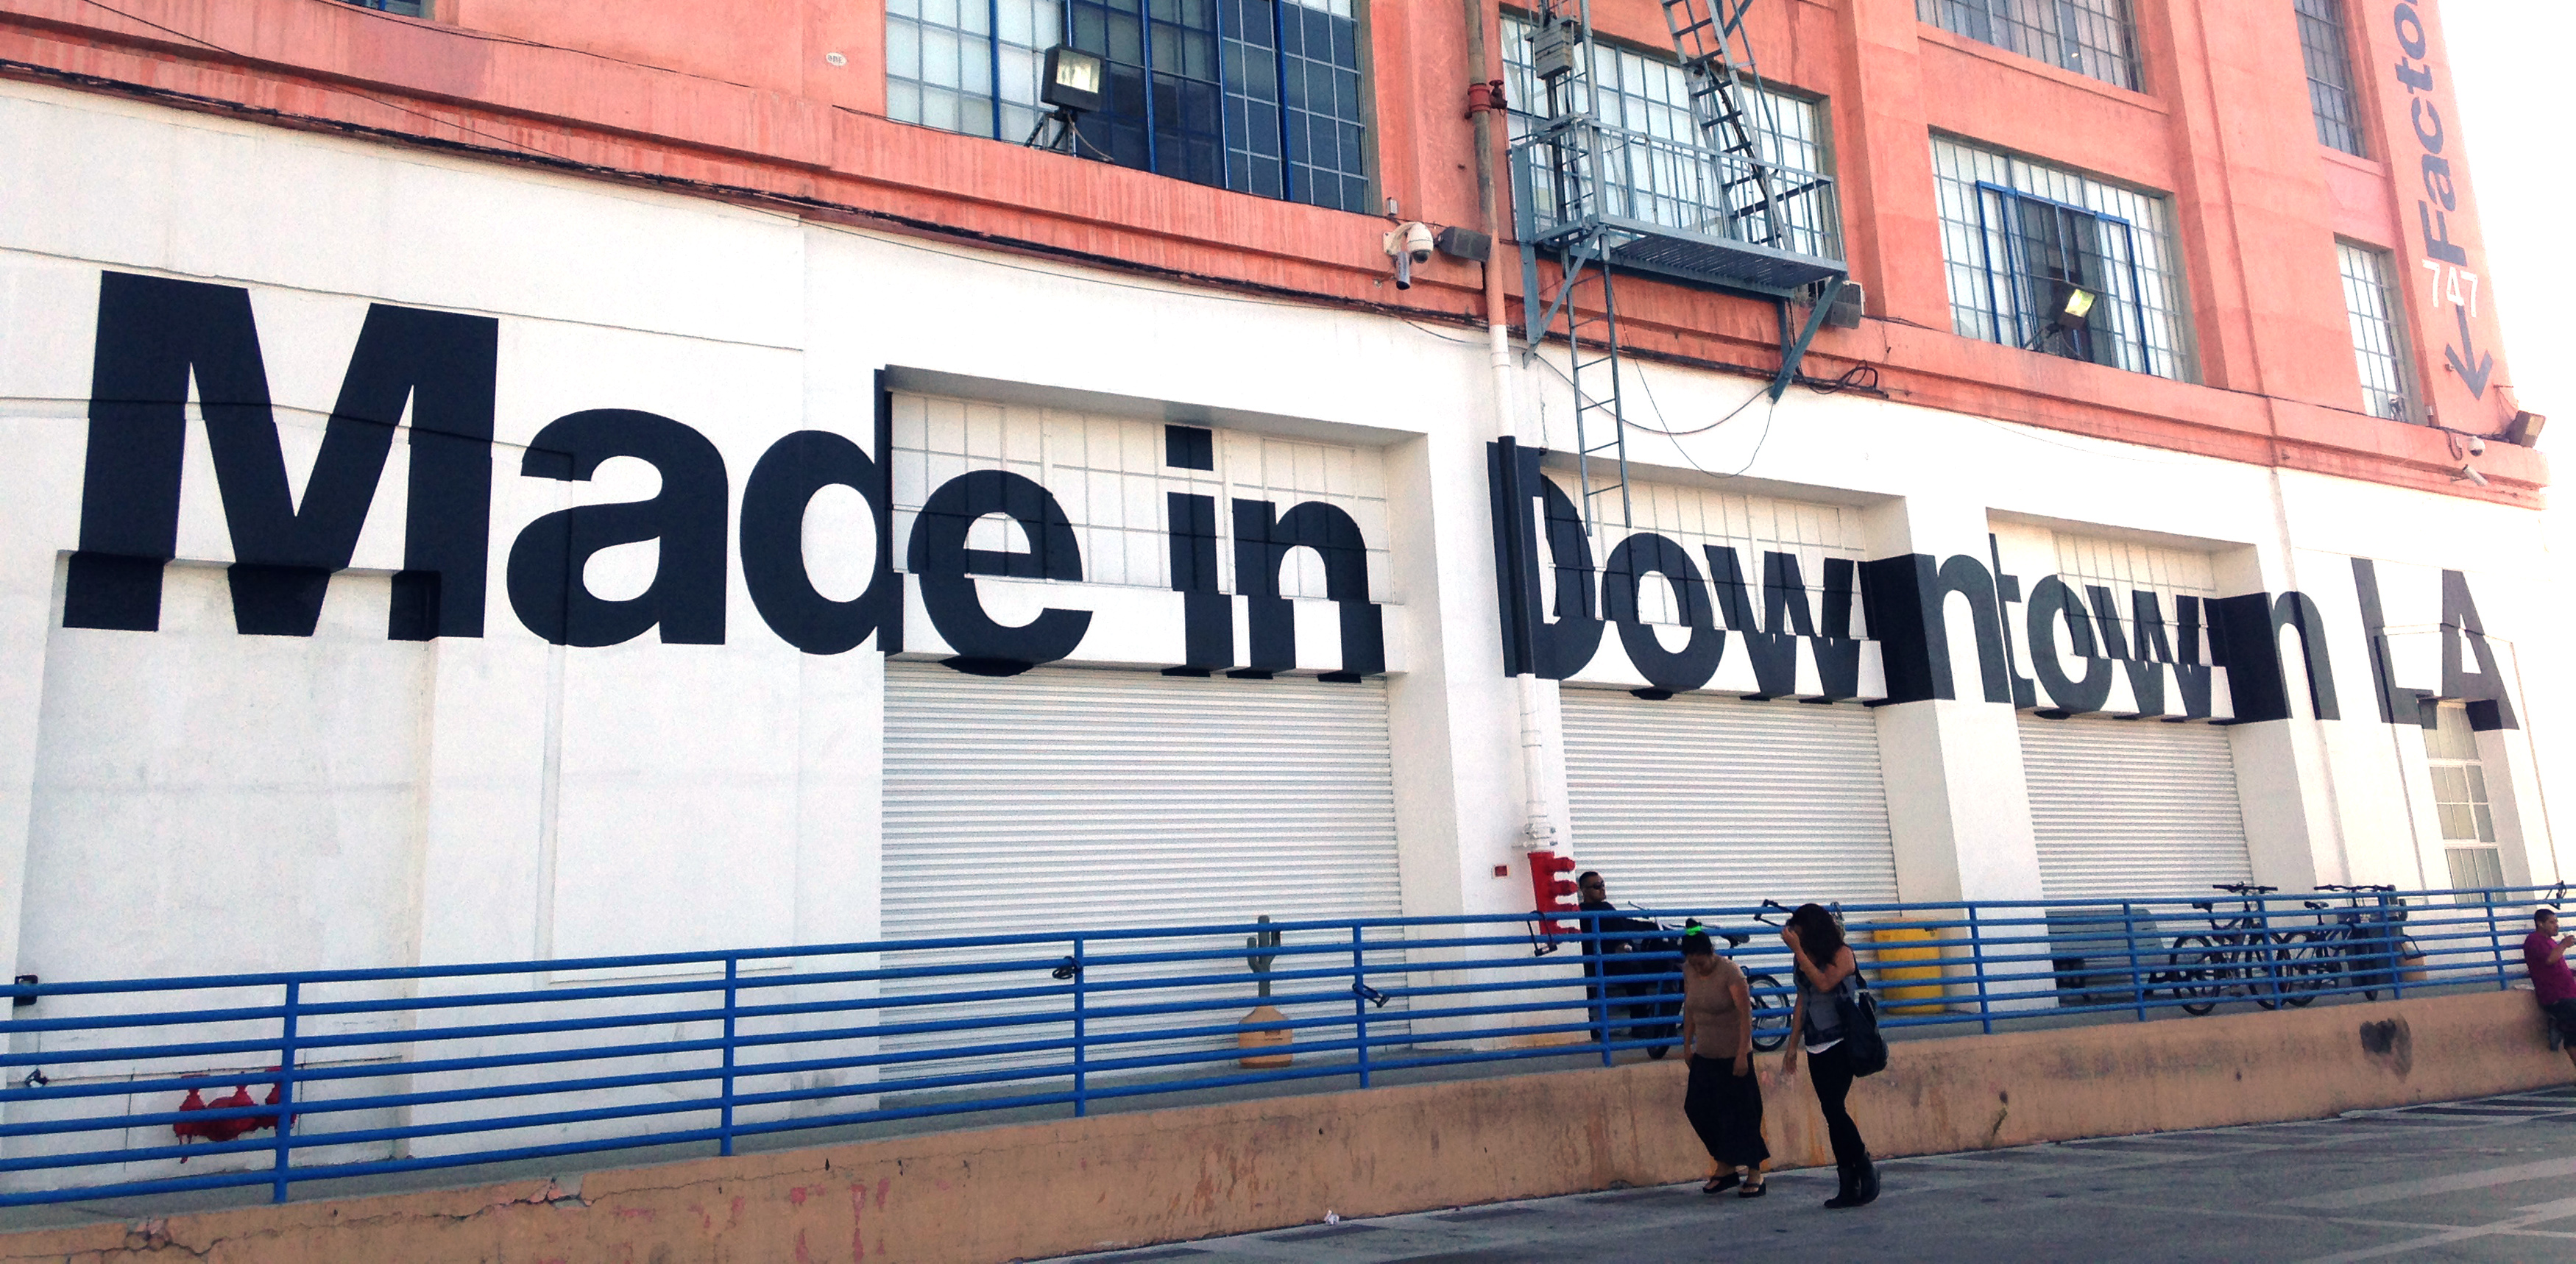 Two people walk past the American apparel factory building and outlet store in Los Angeles, California July 7, 2014. Ousted American Apparel Inc head Dov Charney supported workers in the clothing industry with his stance in favor of immigration rights and determination to keep jobs in the United States, but some employees are not returning the favor. Last month American Apparel's board dismissed Charney. It accused the chairman, president and chief executive of misusing corporate funds and failing to prevent the dissemination of nude photos of a female ex-employee who sued him. Picture taken July 7, 2014. To match Feature AMERICAN-APPAREL-WORKERS/ REUTERS/Lisa Baertlein (UNITED STATES - Tags: BUSINESS EMPLOYMENT SOCIETY CRIME LAW) - RTR3XO82